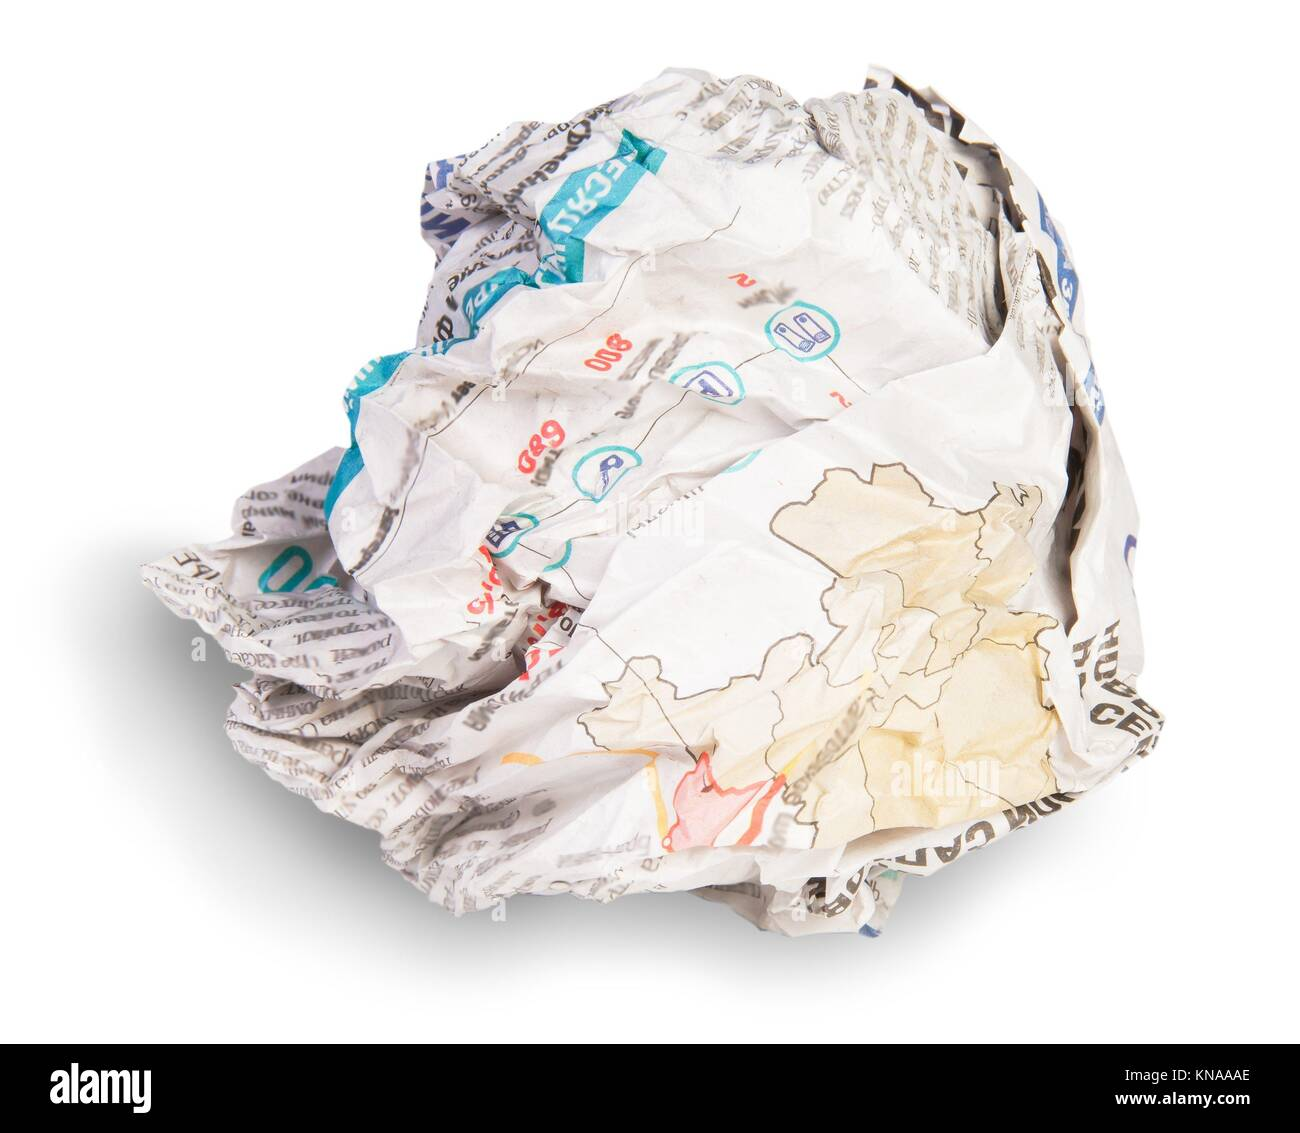 Crumpled Sheet Of Newspaper Isolated On White Background. - Stock Image